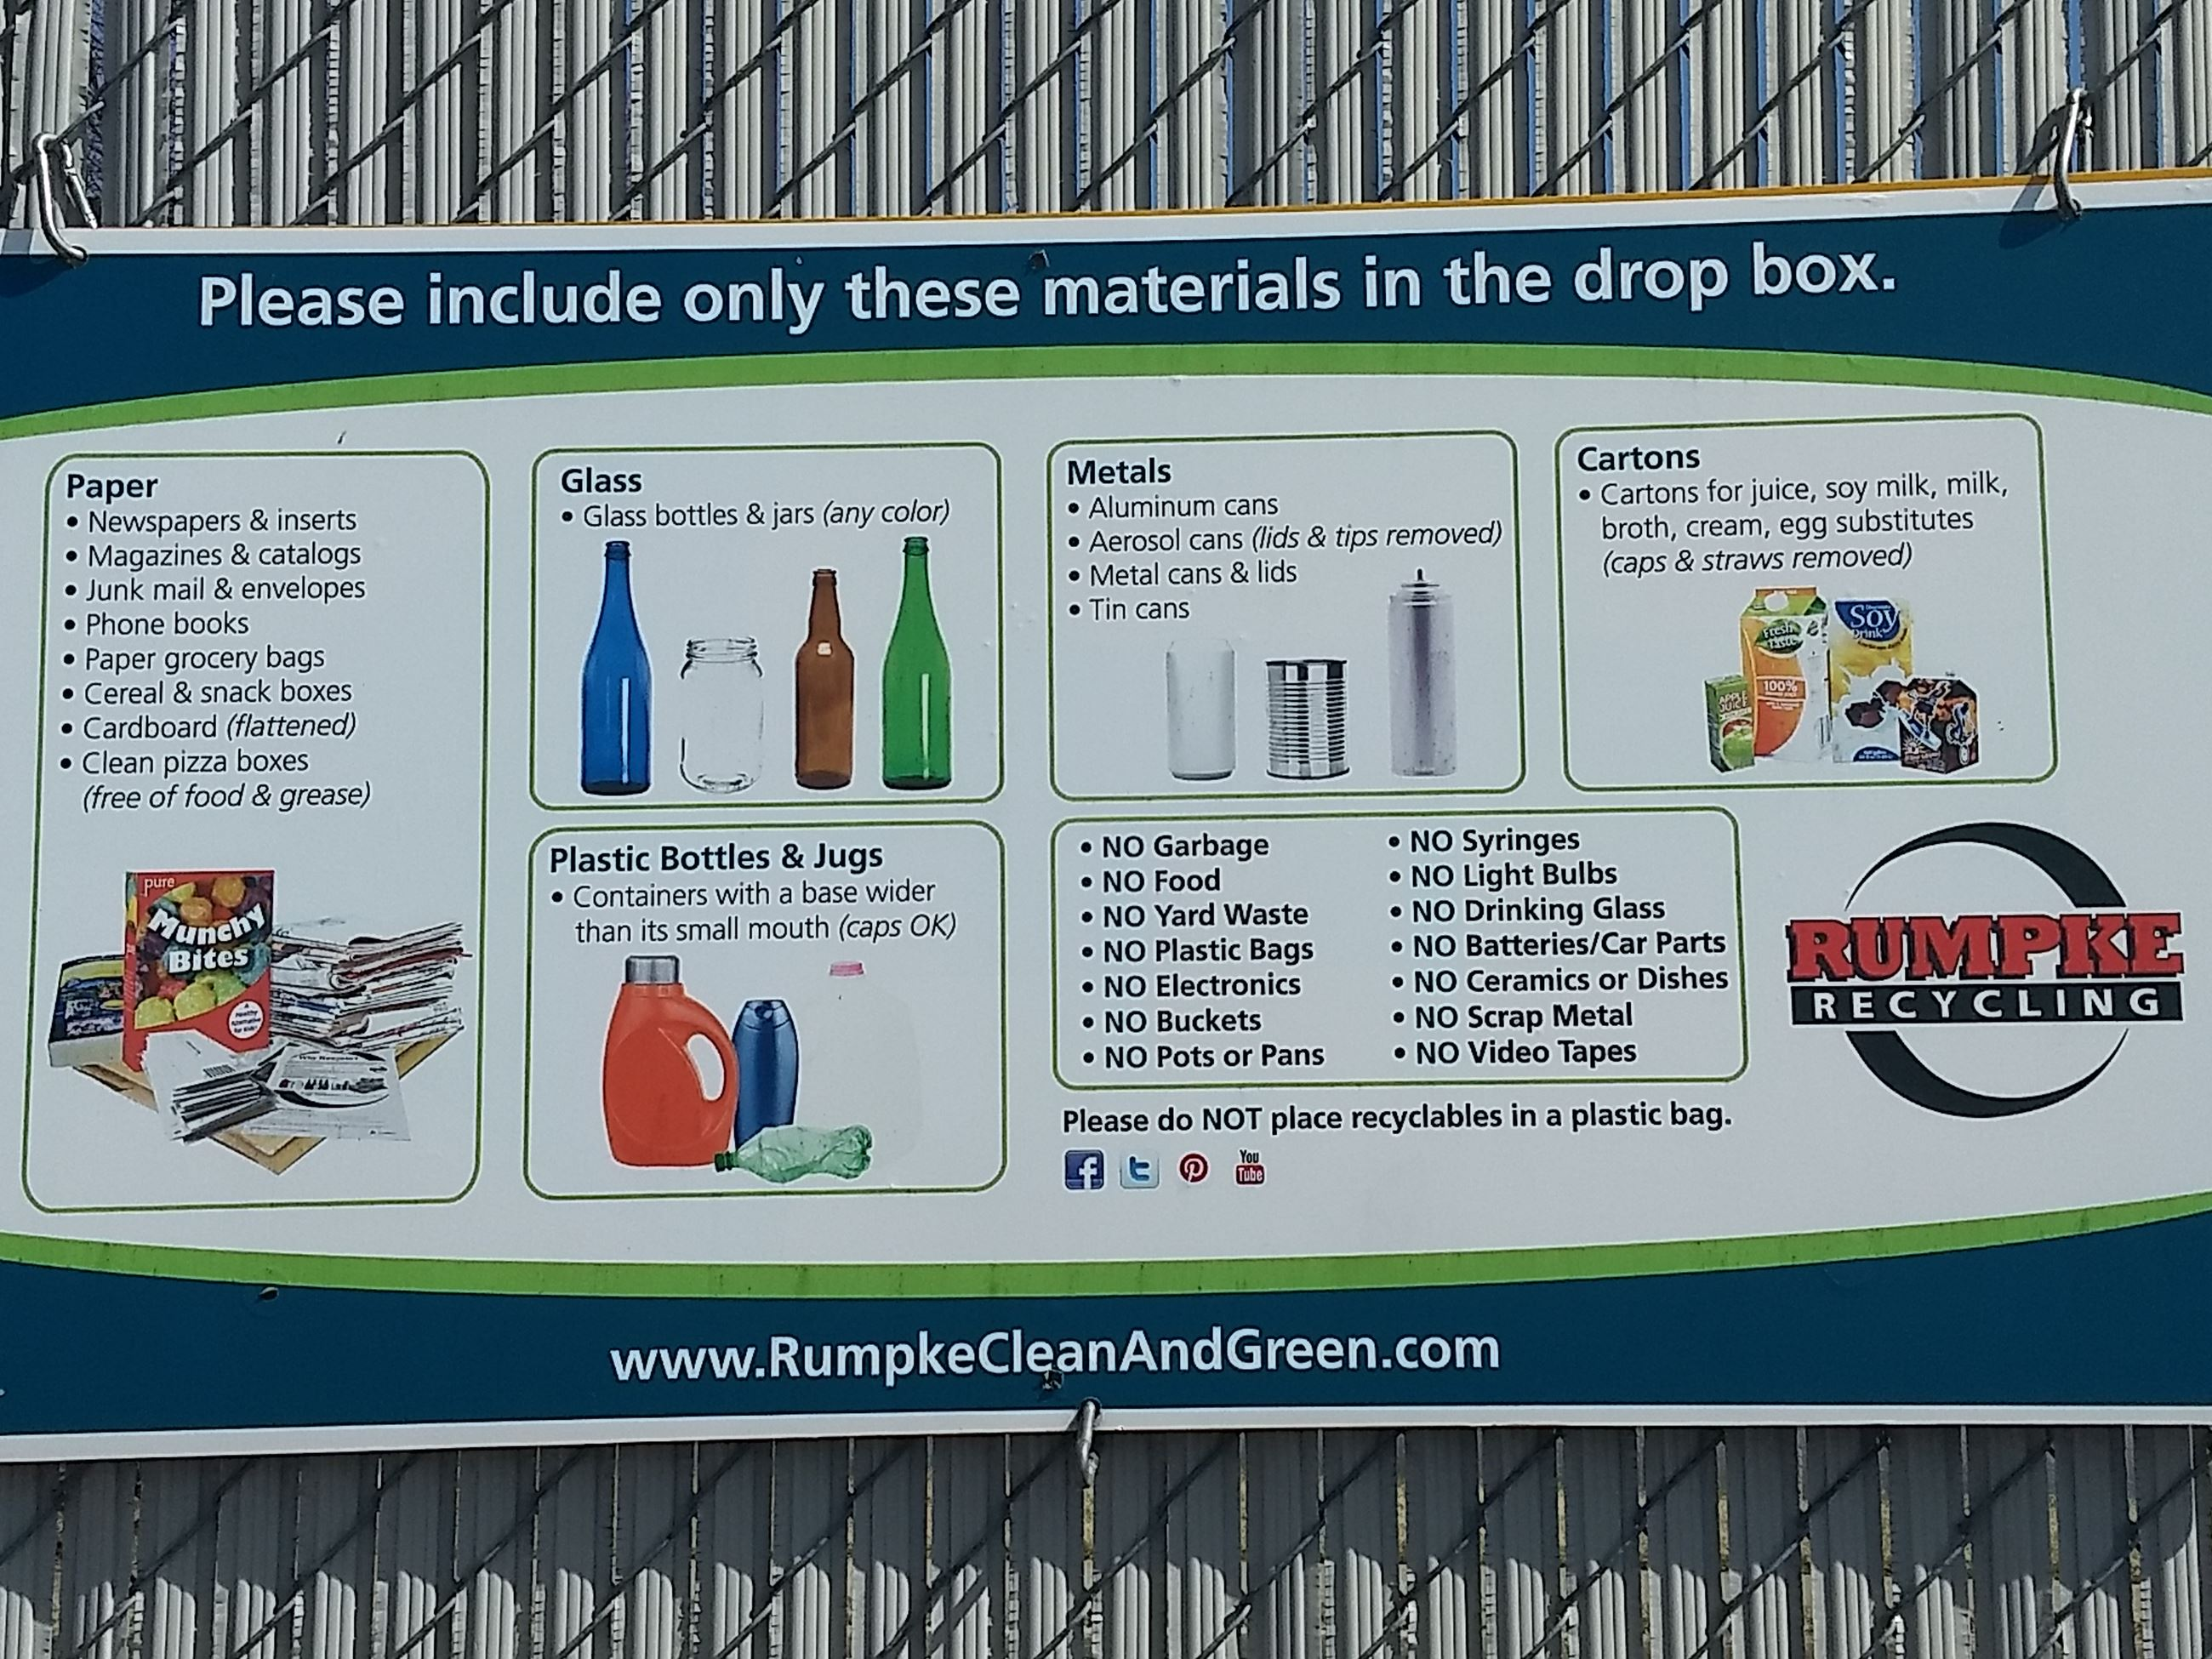 A sign with guidelines on what can be recycled.